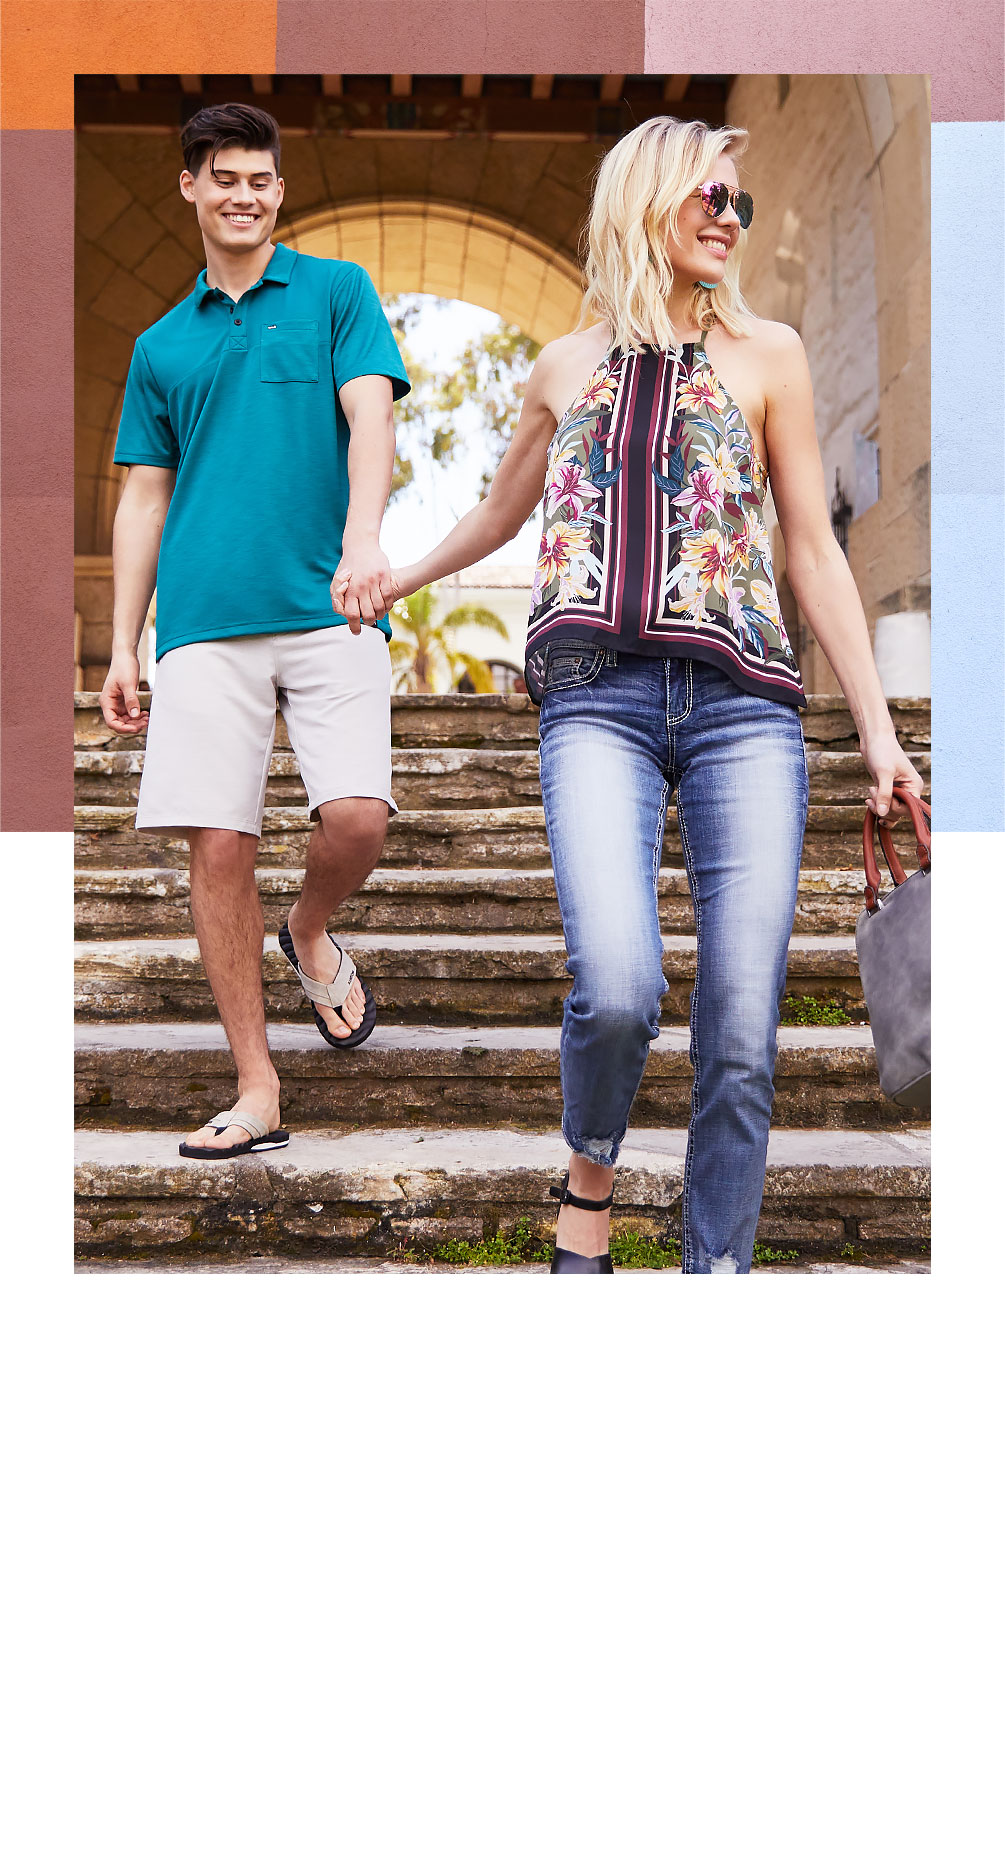 cddd72fc0e Guy and girl holding hands wearing new tops from Buckle. SHOP WOMEN